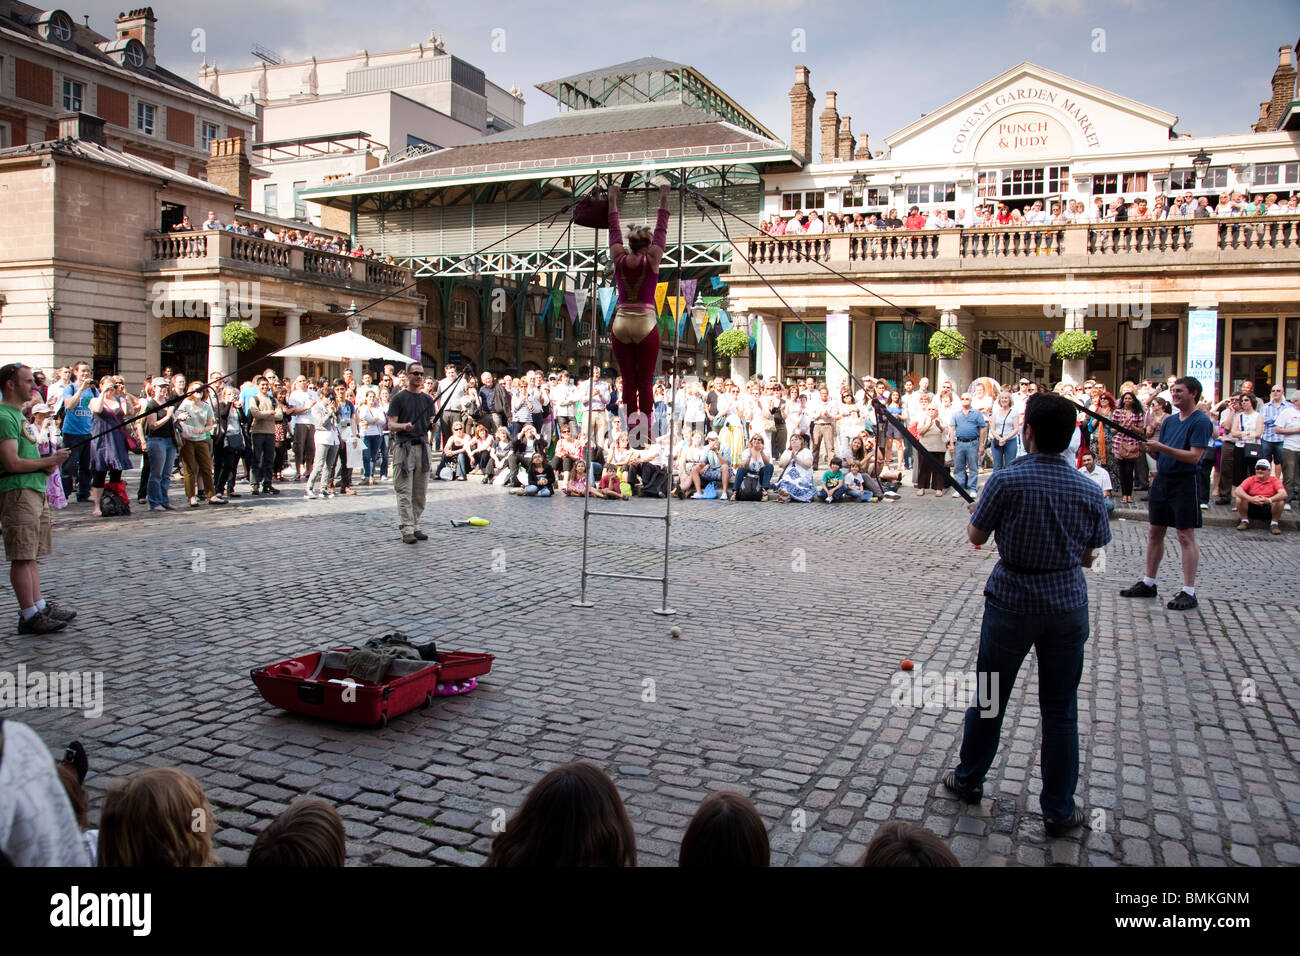 Street performers at Covent Garden London - Stock Image